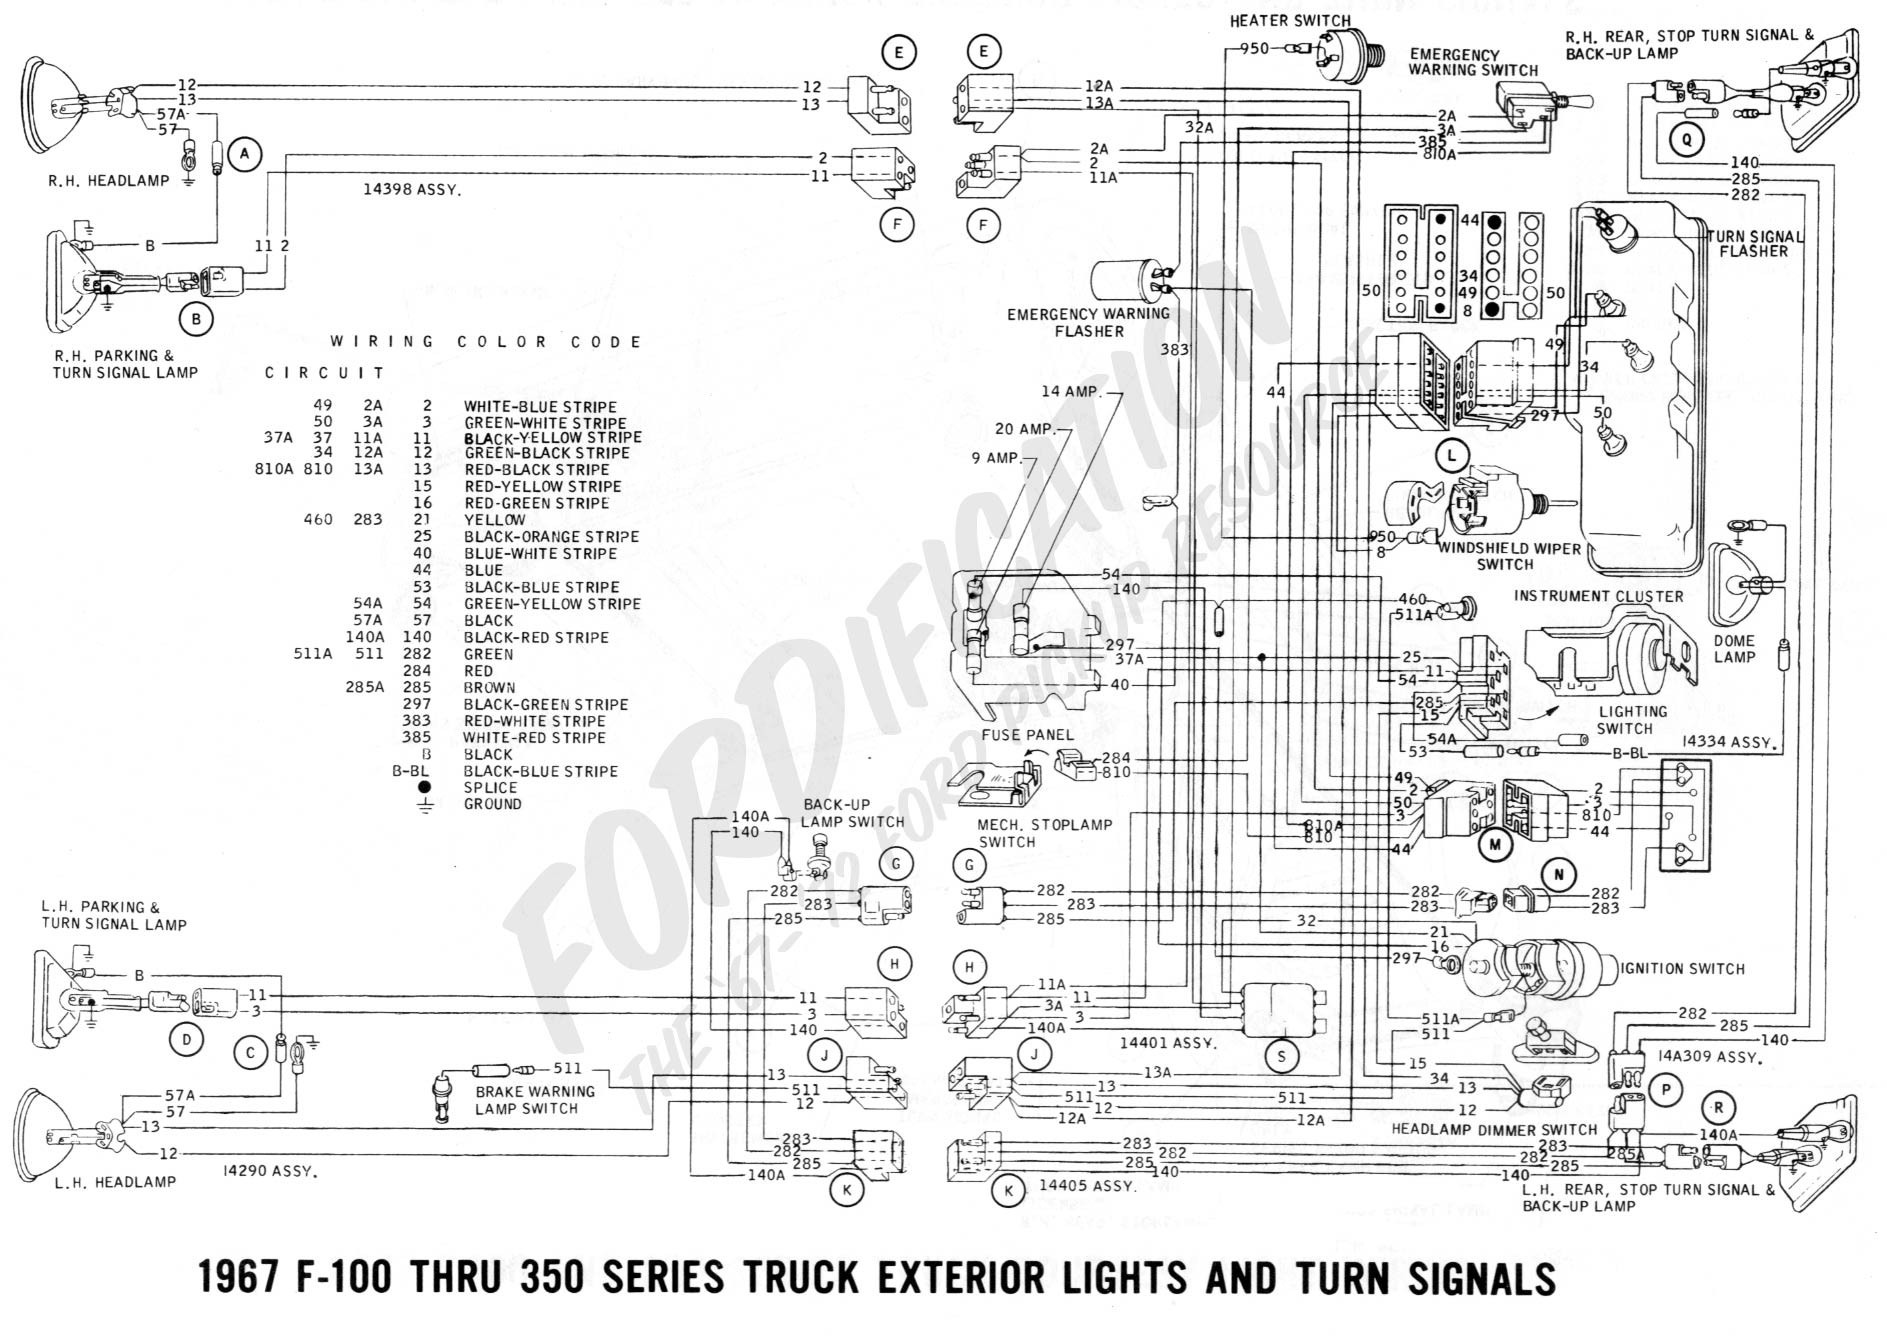 Ford F150 Wiring Diagrams ford F150 Wiring Diagrams Awesome ford Truck Technical Drawings and Of Ford F150 Wiring Diagrams